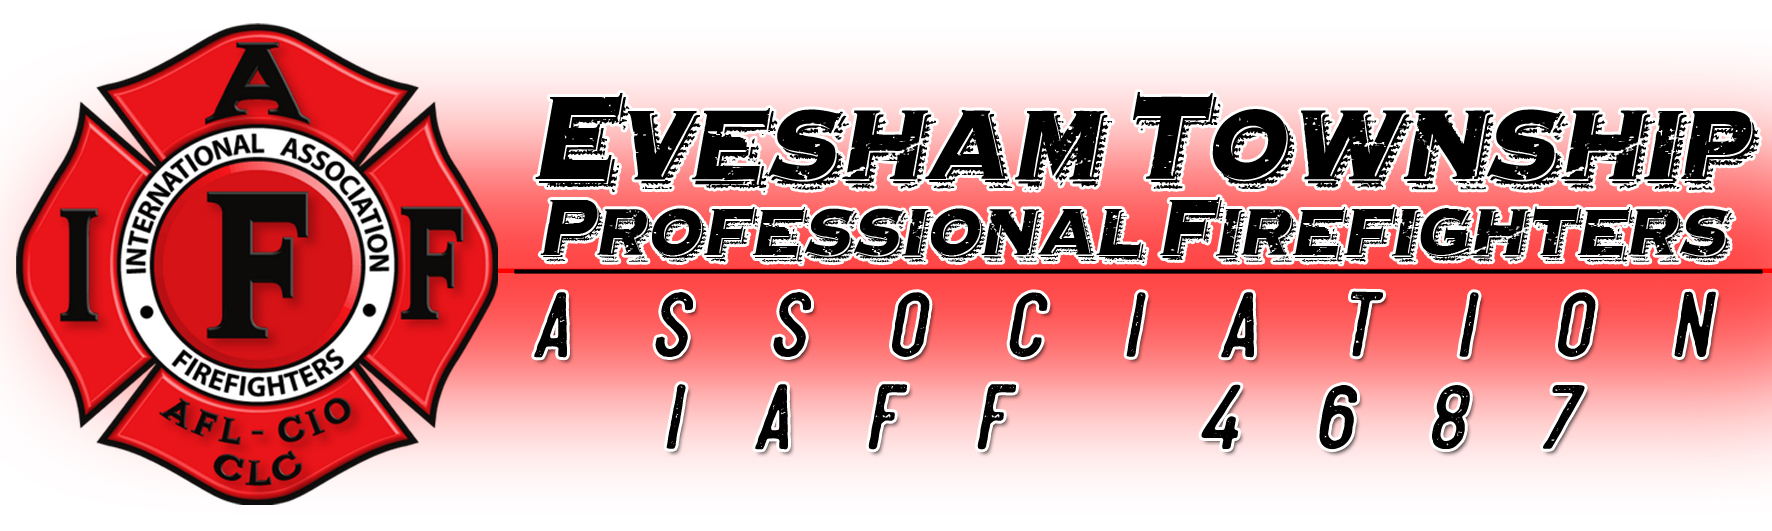 Evesham Professional Firefighters